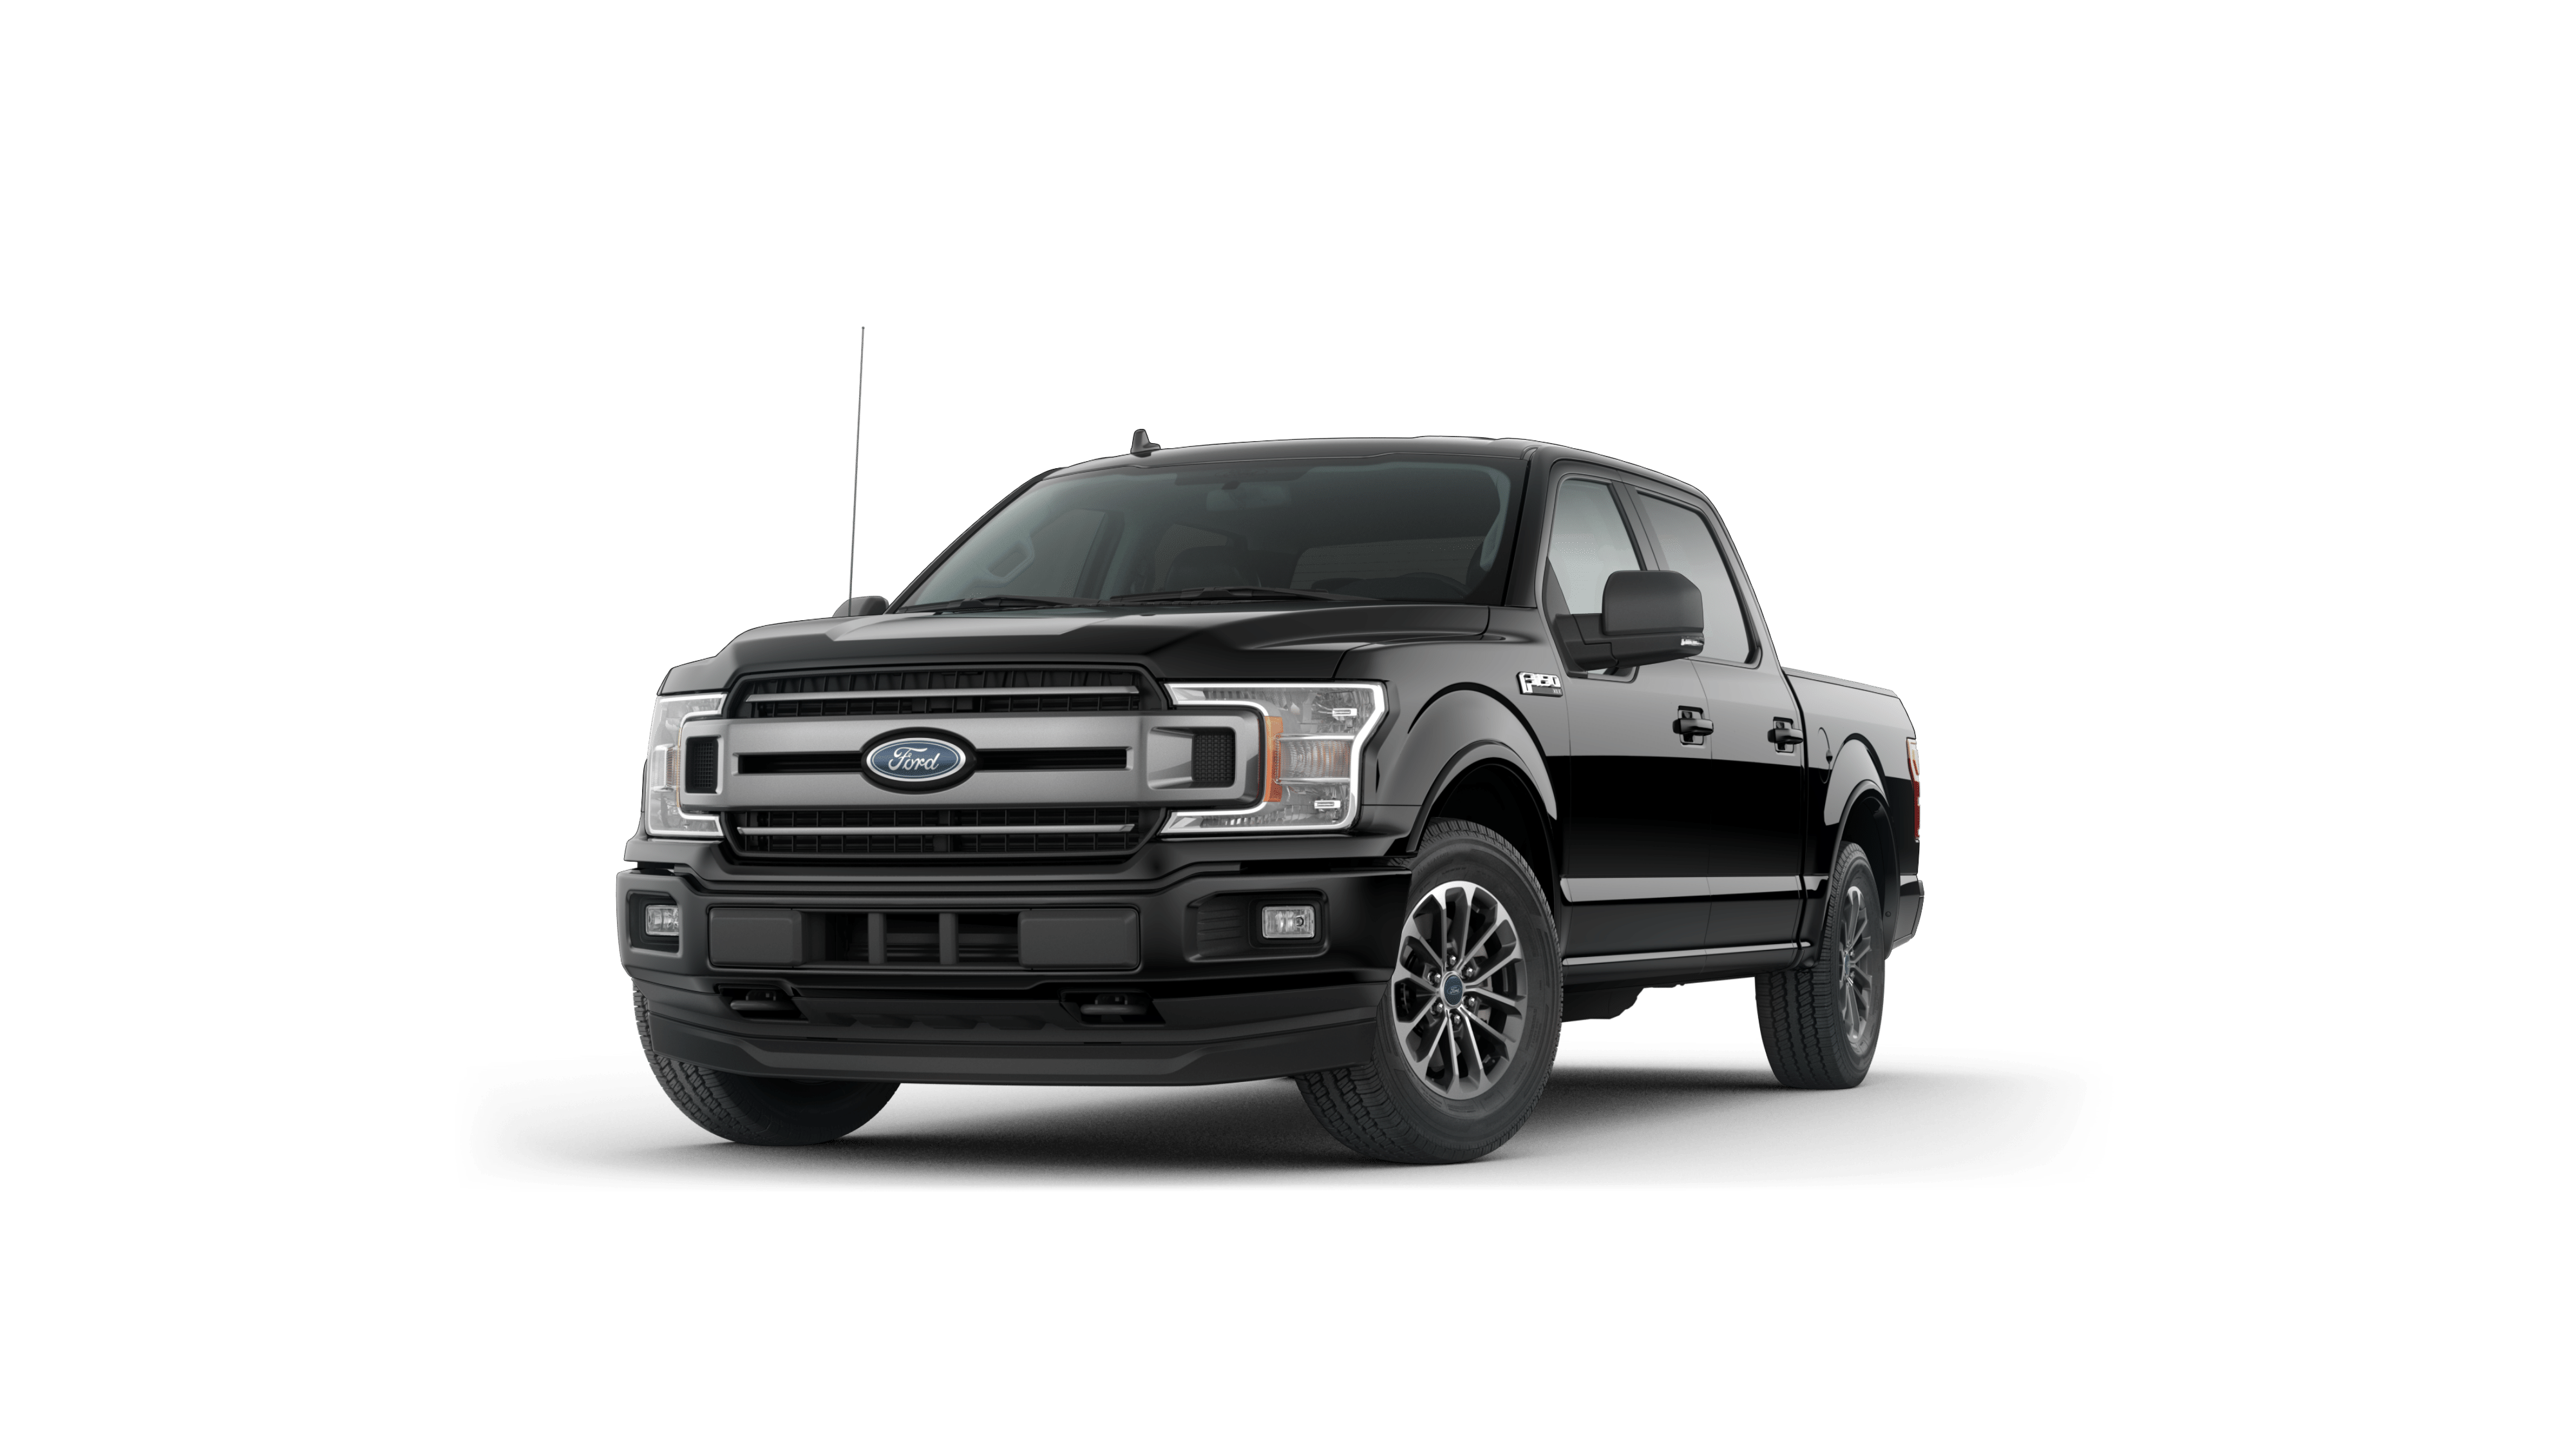 Quakertown 2018 Explorer Sport Trac Vehicles For Sale At Ciocca Ford Fuel Filter 2005 F 150 Vehicle Photo In Pa 18951 1403